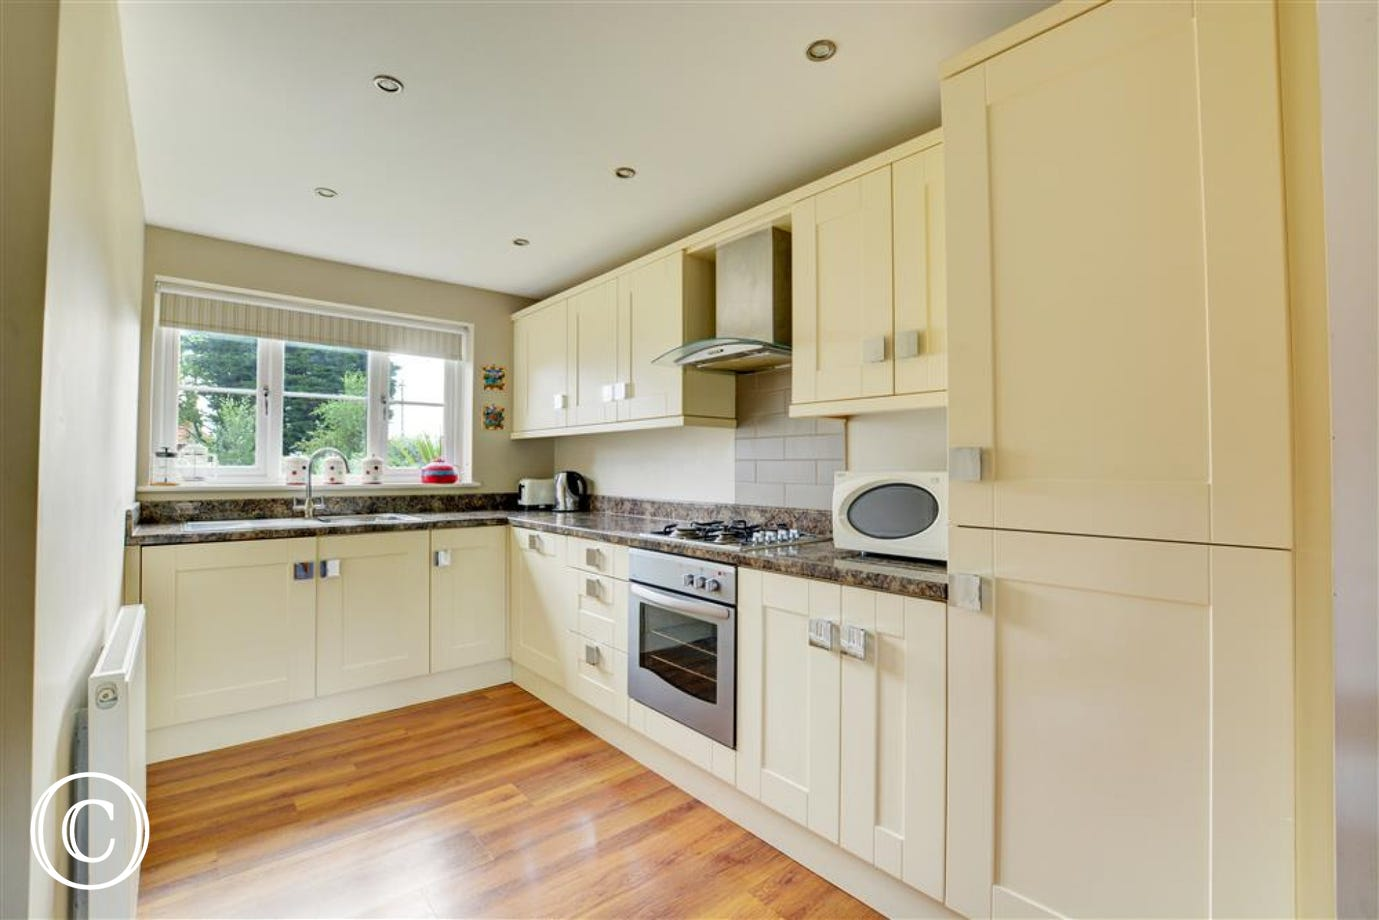 Modern, well equipped kitchen with electric oven and gas hob